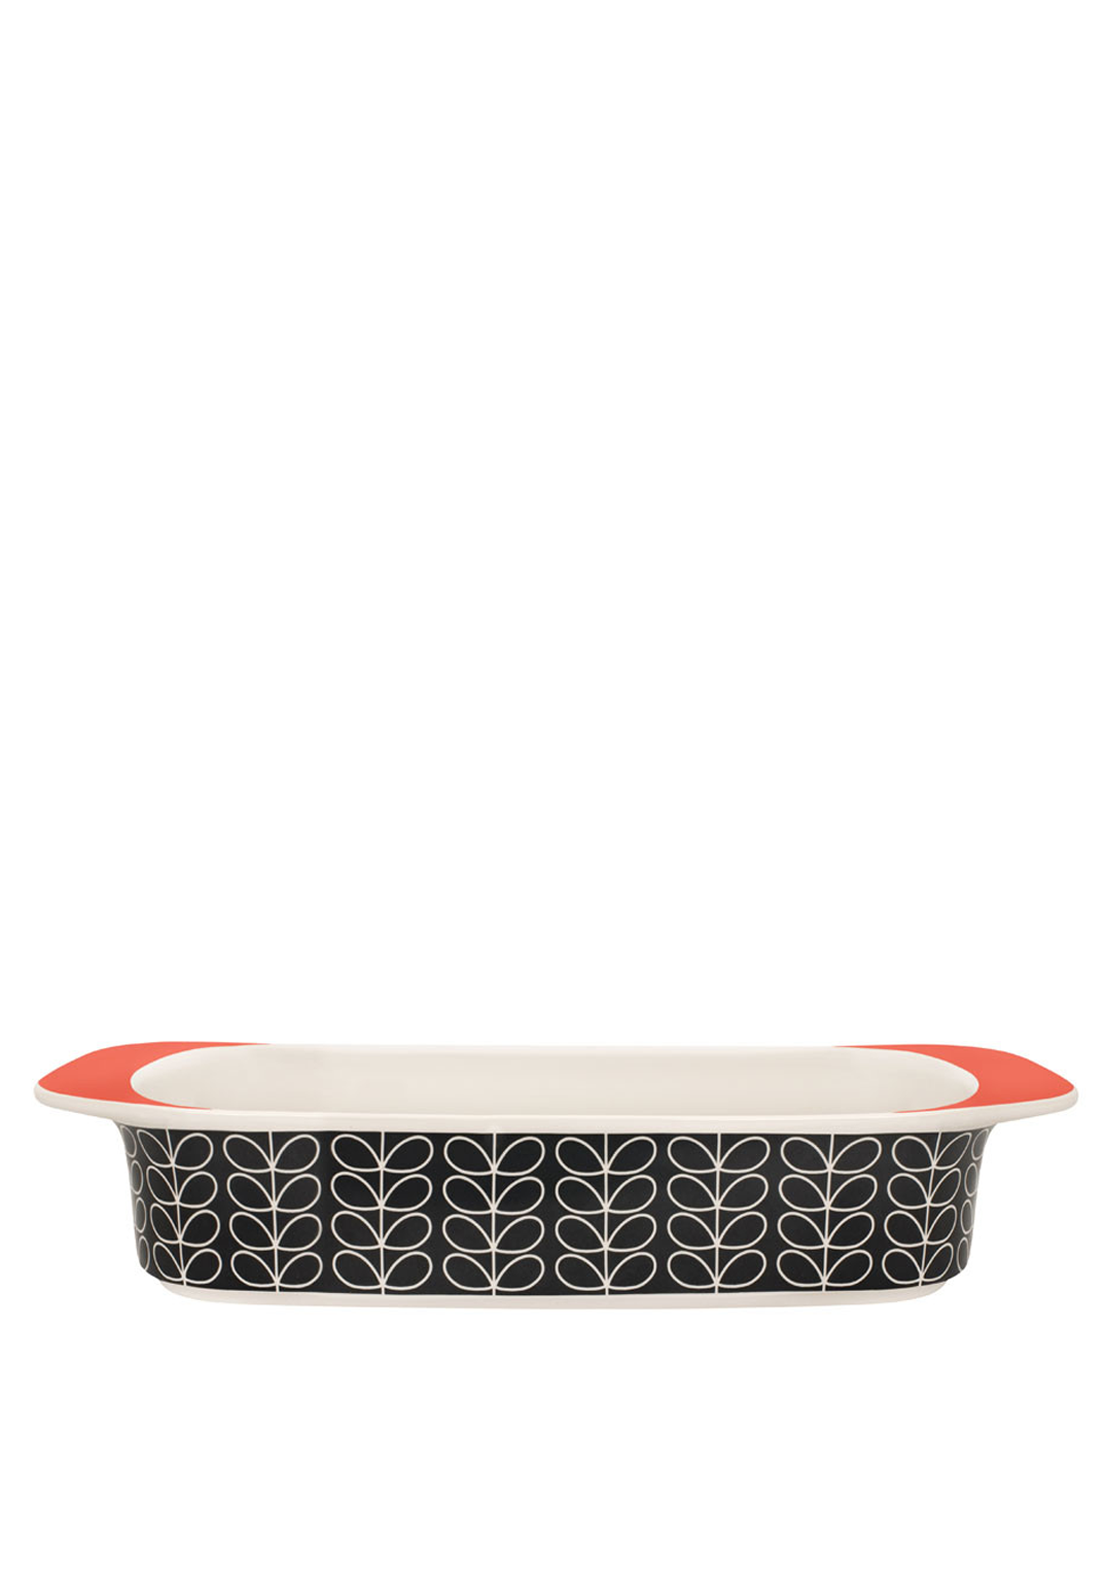 Orla Kiely Gratin Dish Linear Stem, Dark Grey